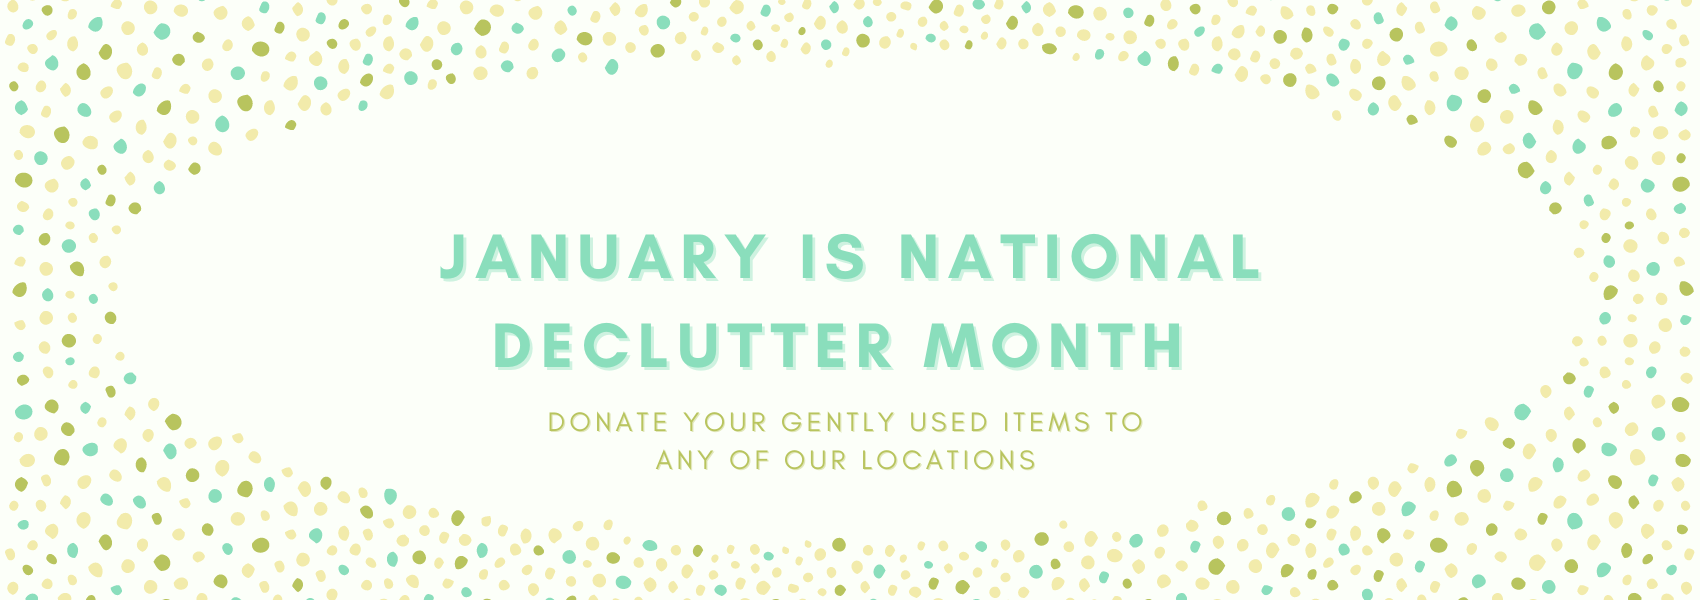 January is National Declutter Month